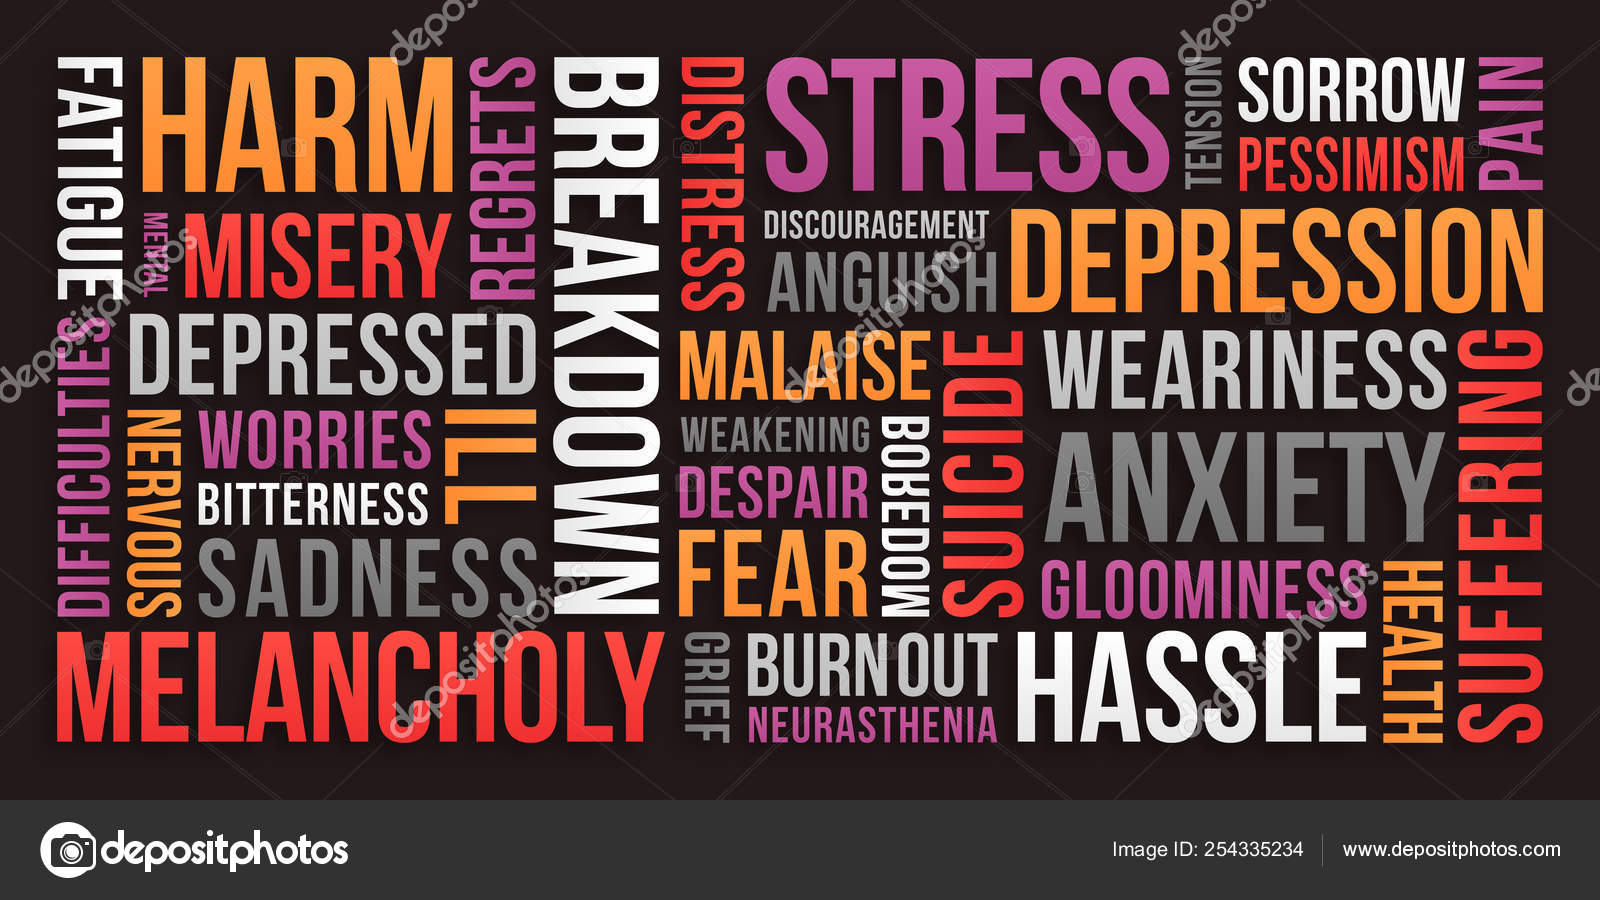 Stress Depression Anxiety Word Cloud Stock Vector C Jerome Cronenberger 254335234